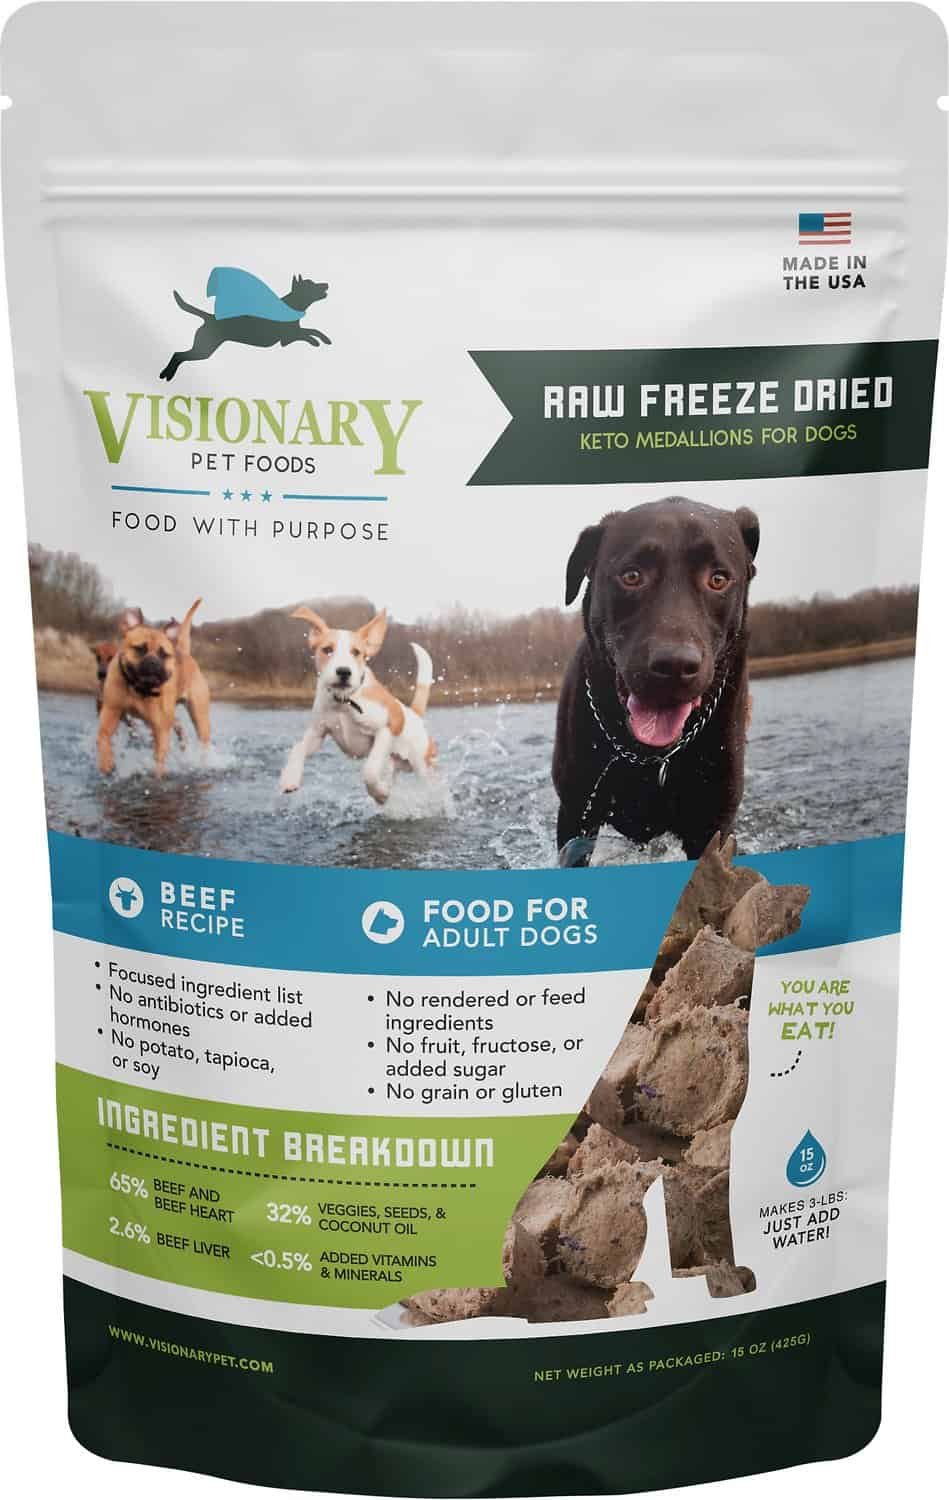 Valiant Dog Food (Now Visionary): [year] Reviews & Coupons 13